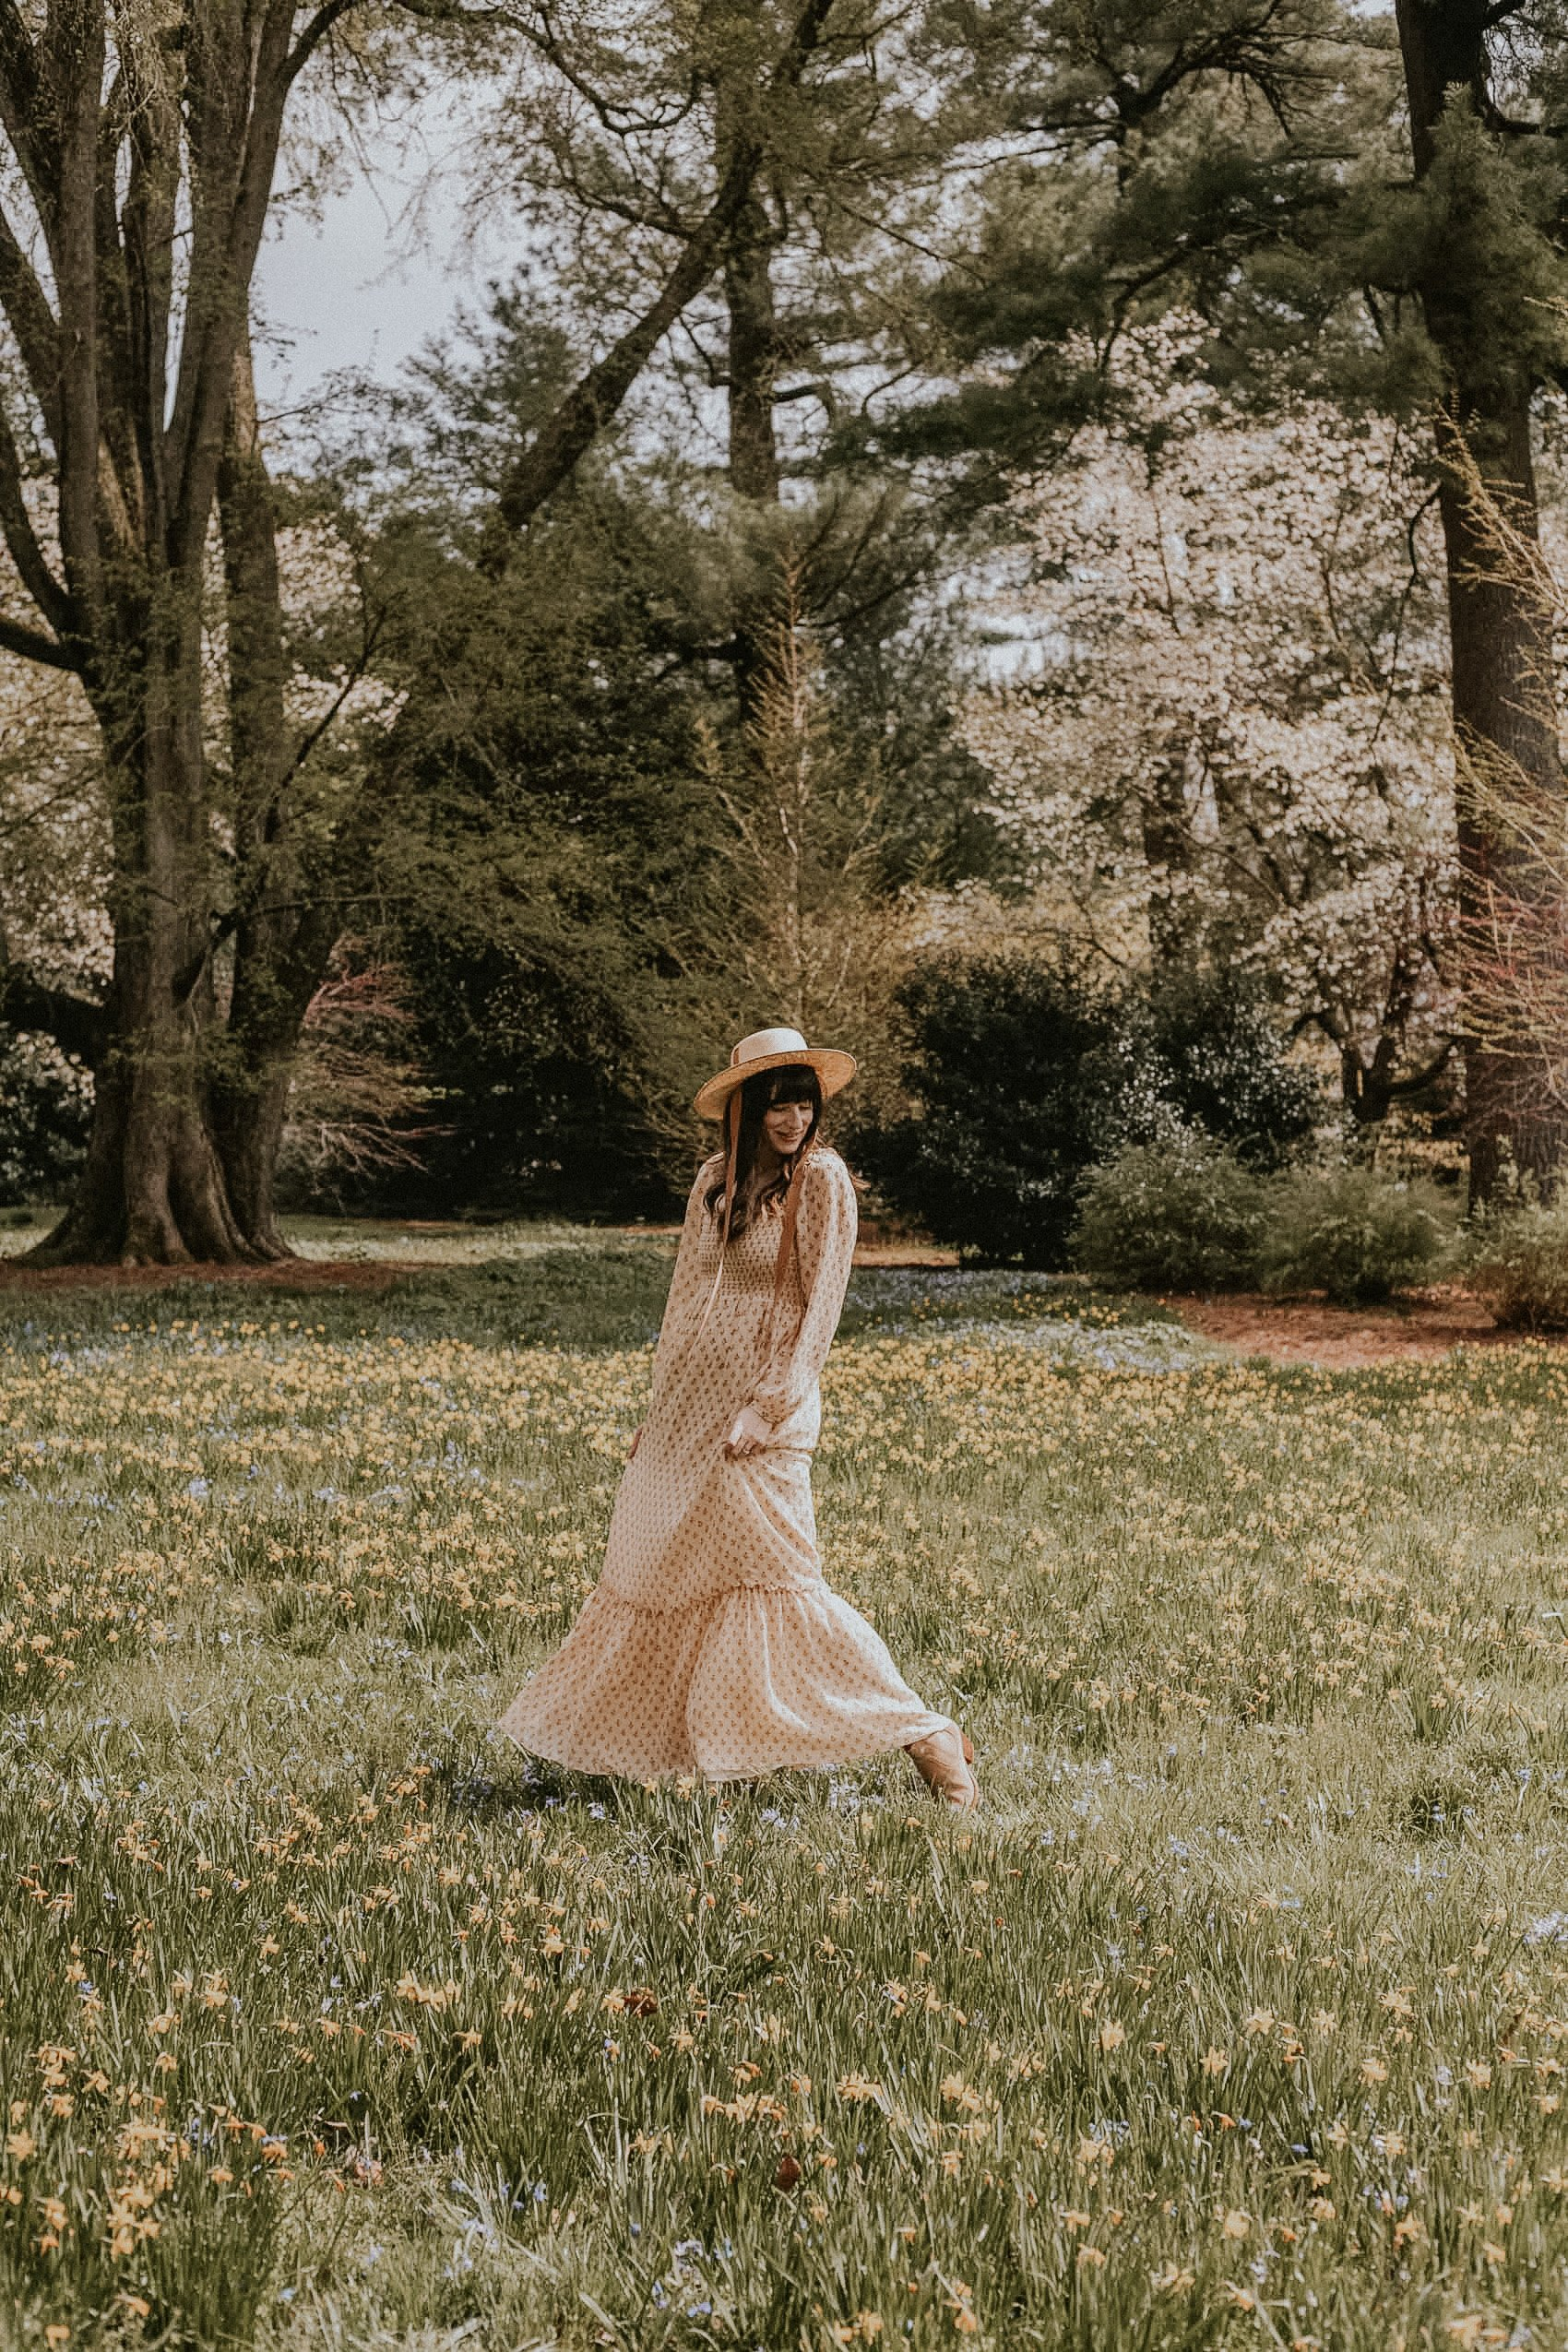 Sezane Floral Maxi Dress with Straw Boater Hat in flower field at Longwood Gardens